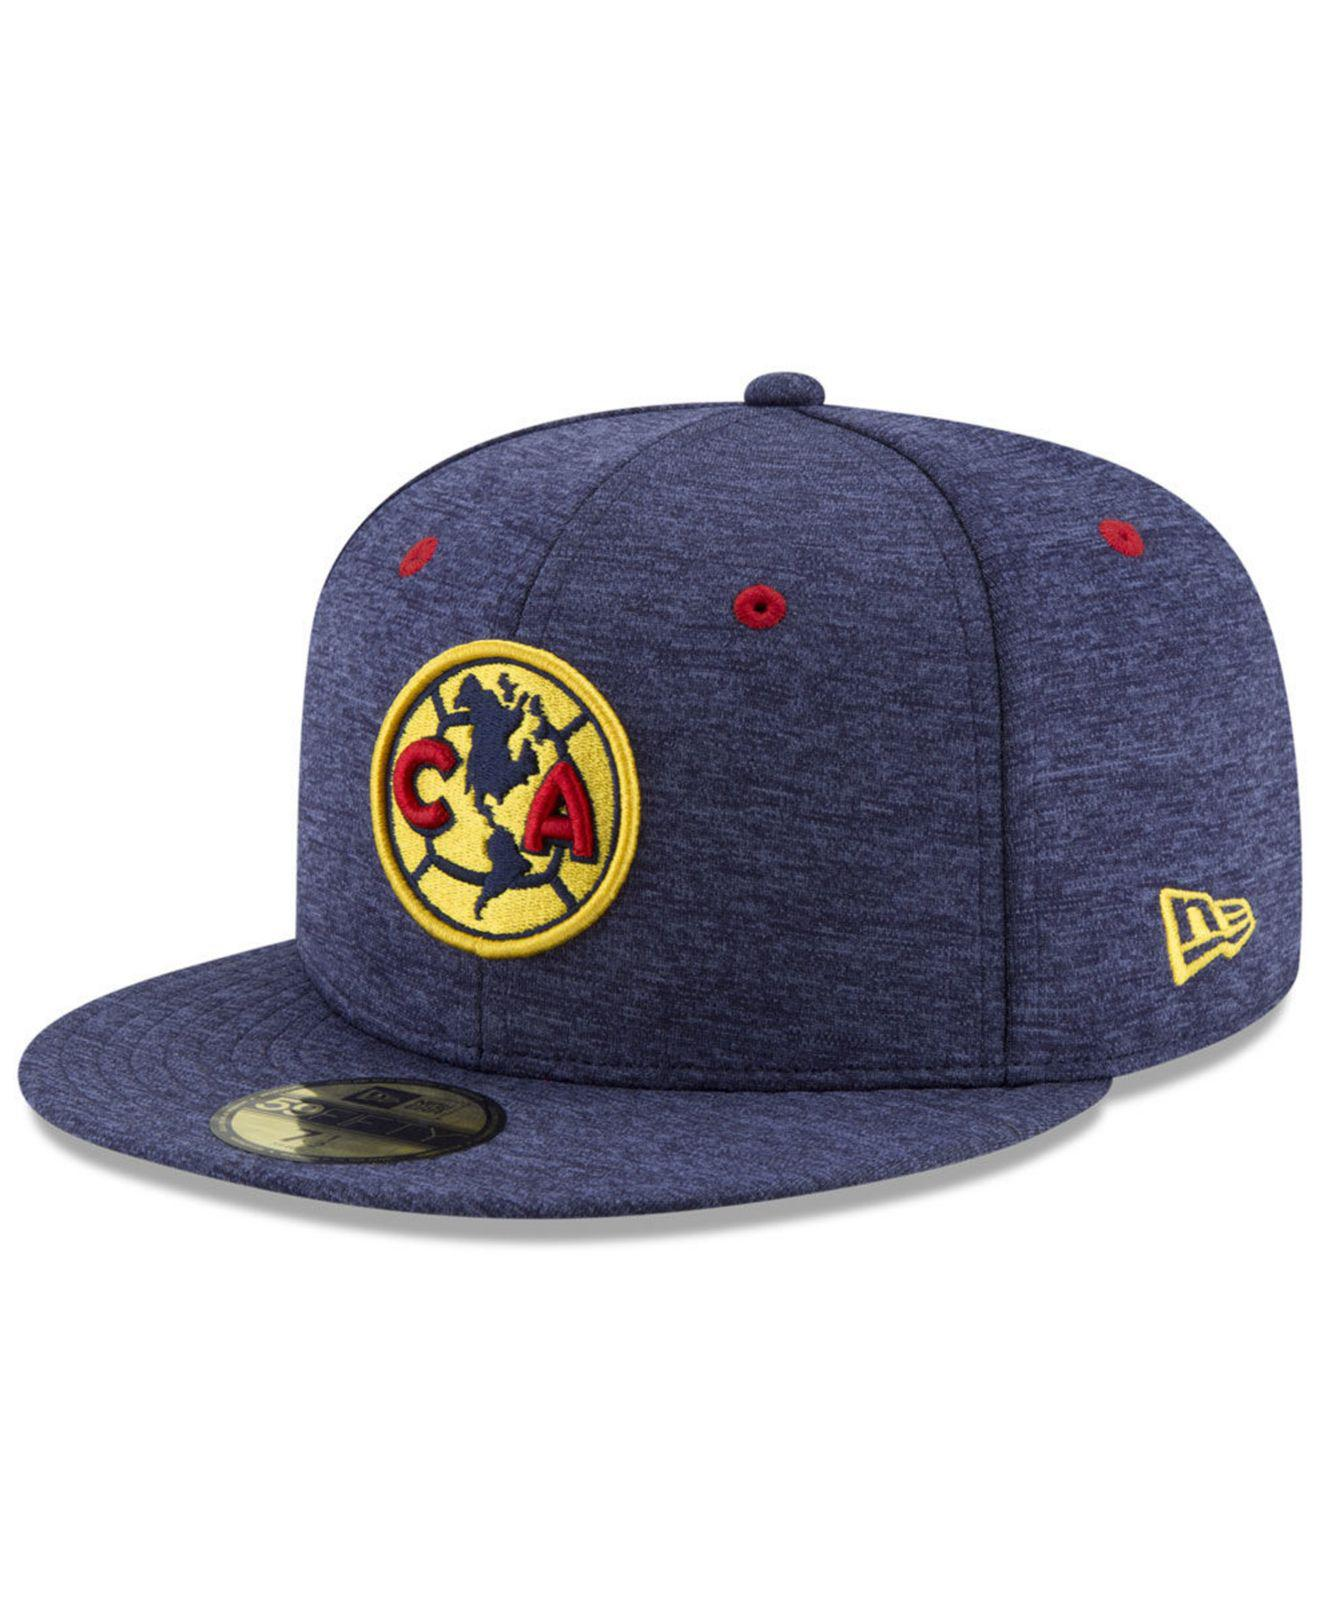 901530bcb481d KTZ Club America Shadow 59fifty Fitted Cap in Blue for Men - Lyst